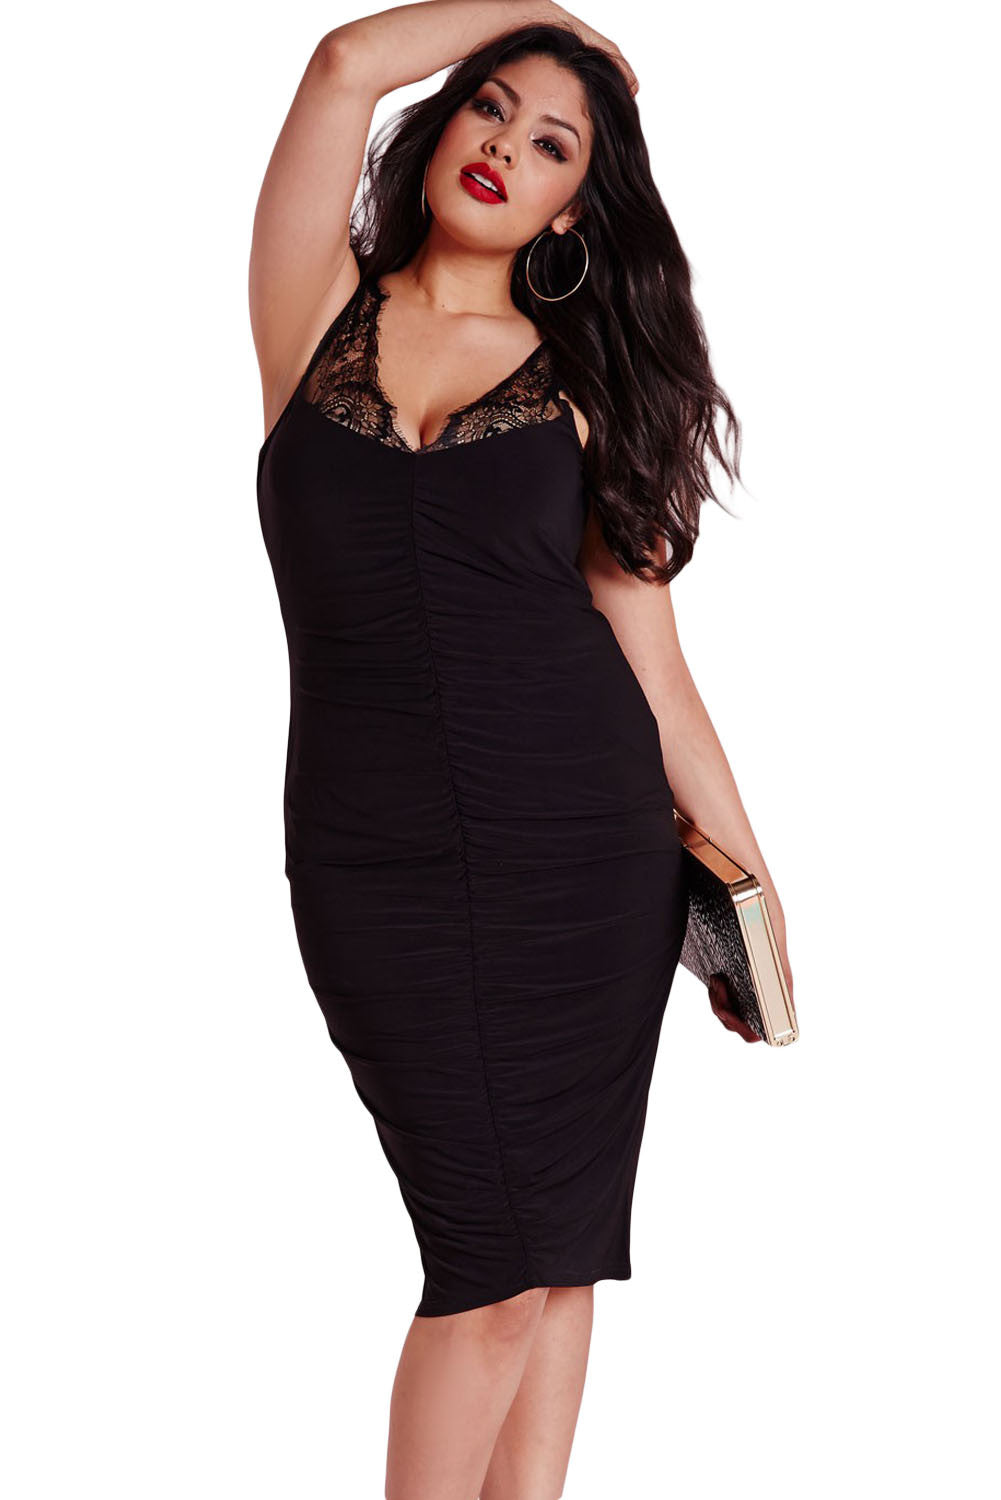 Chicloth Black Plus Size Slinky Lace Ruched Dress